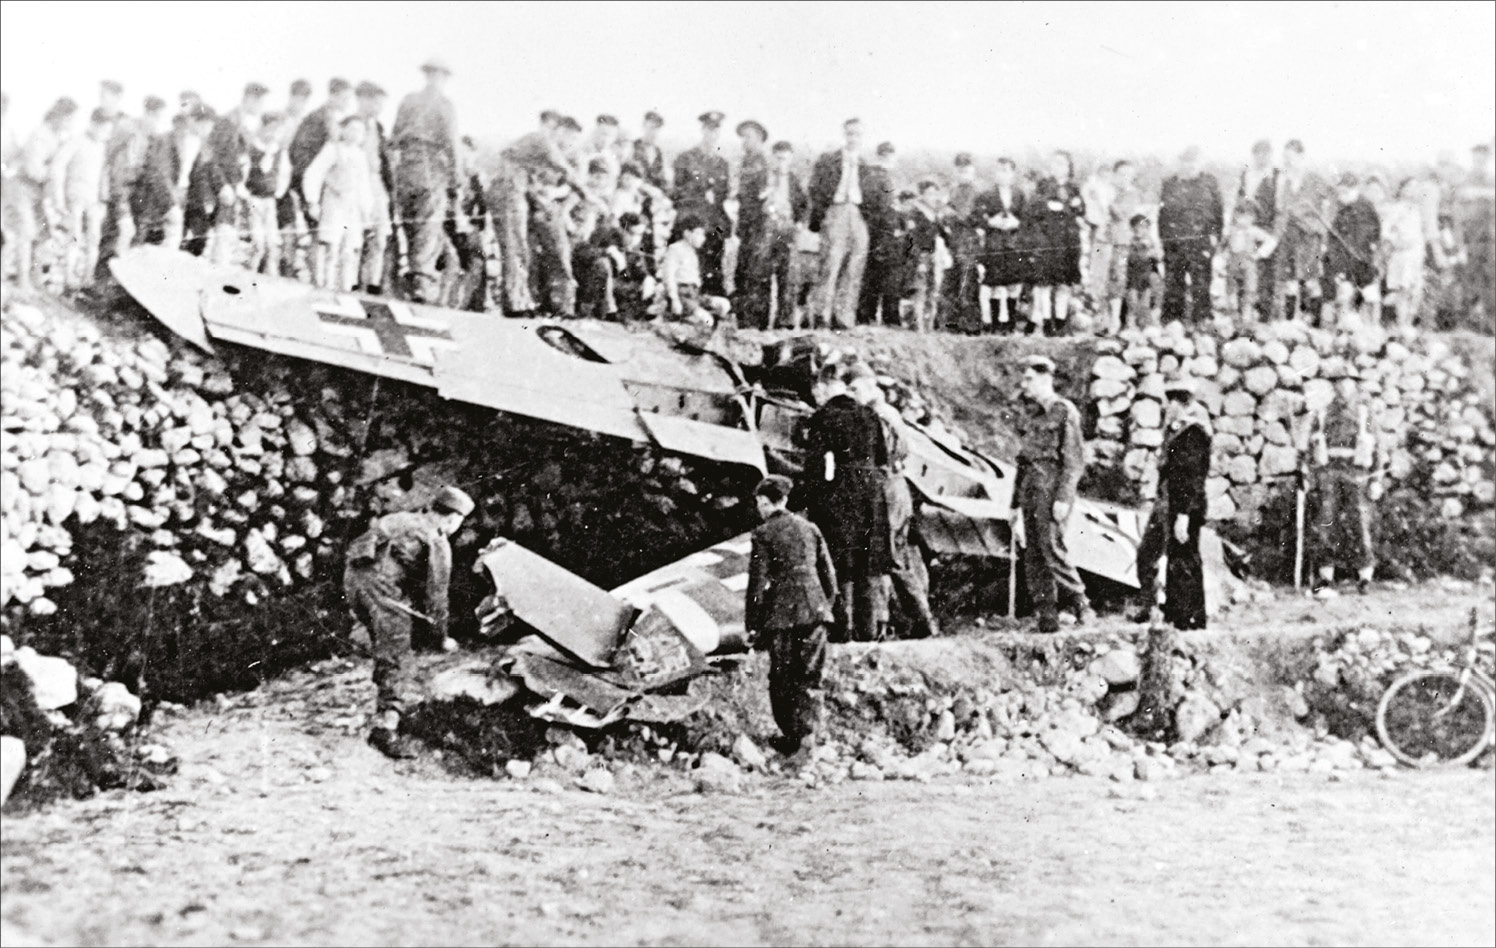 ABOVE An image sometimes misidentified as the Messerschmitt Bf 109 in which Hauptmann Karl-Heinz Krahl was shot down and killed on 14 April 1942. In fact, the pilot of this machine was Unteroffizier Hans Pilz, who survived the crash on 1 April 1942.